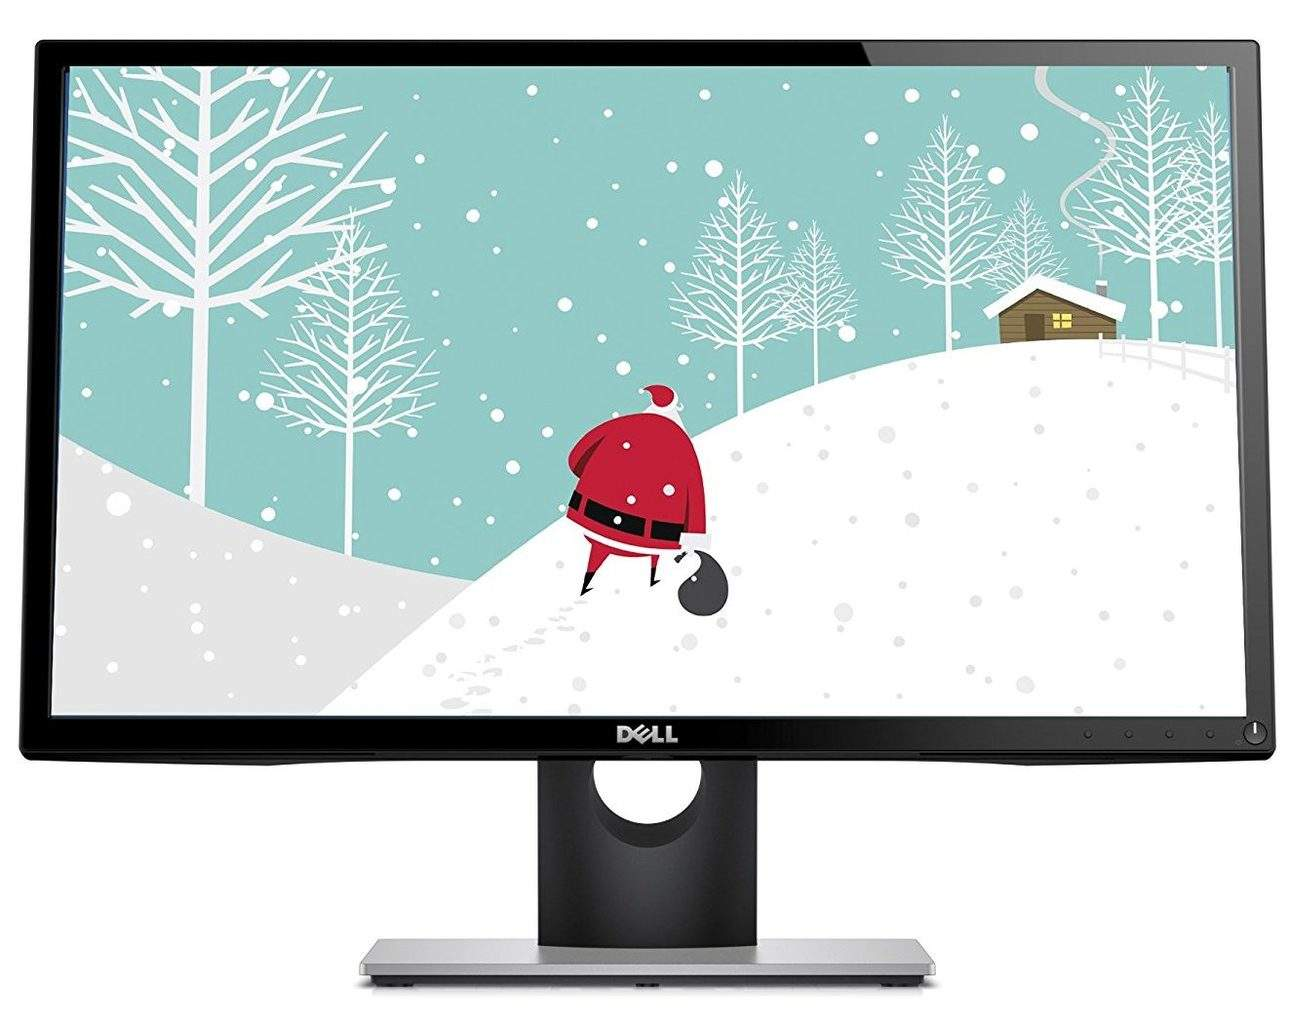 Dell S2415H Review (August 2019) - Best Budget IPS Monitor